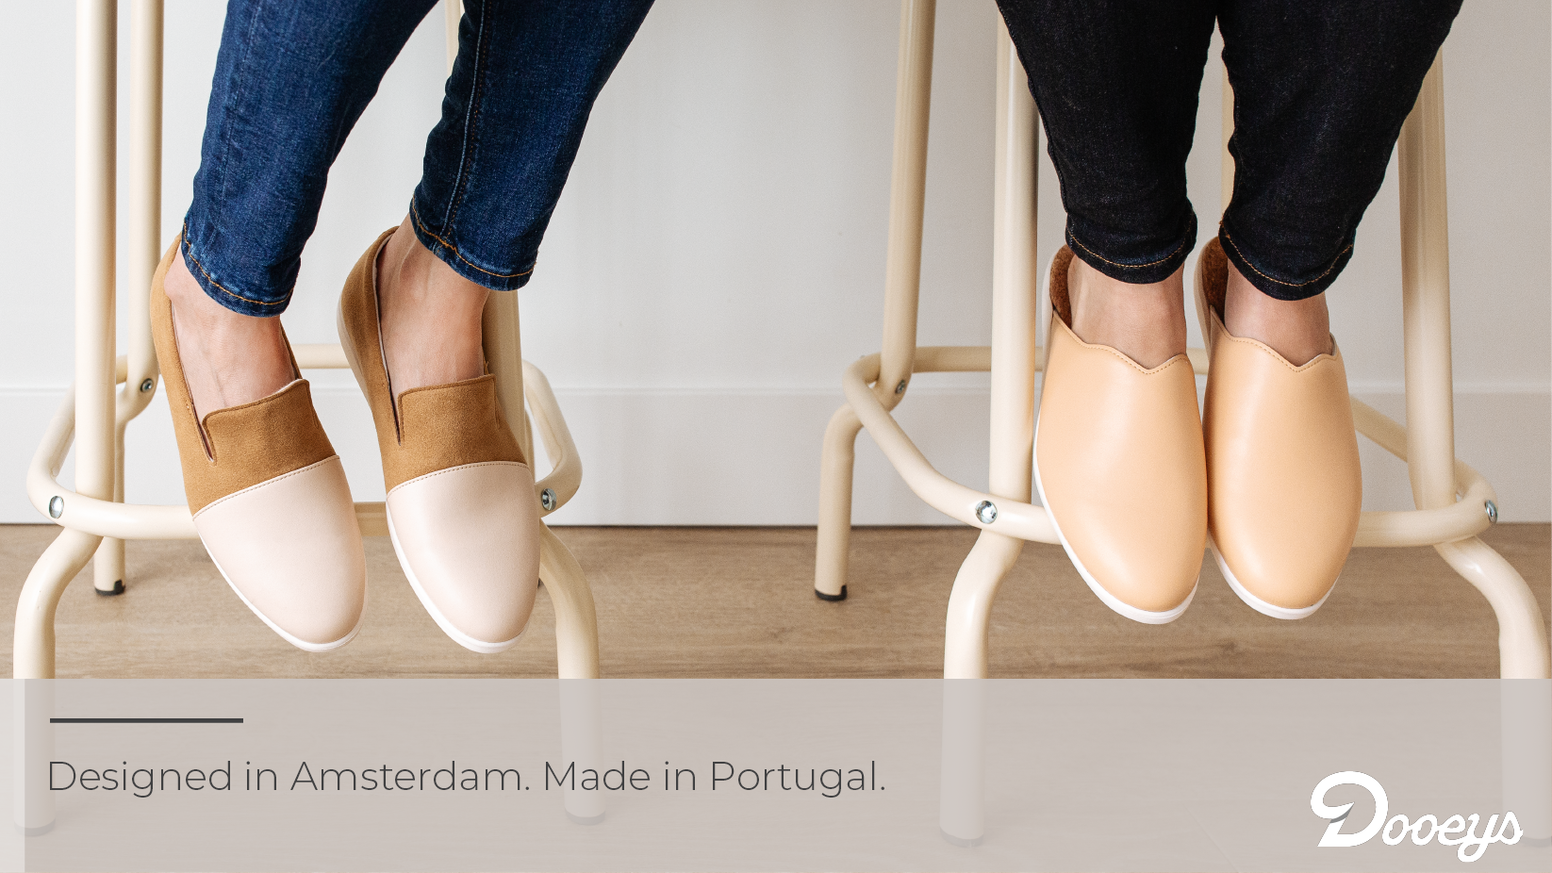 Stylish and supportive shoes made from sustainable materials and ready for everything you do at home.